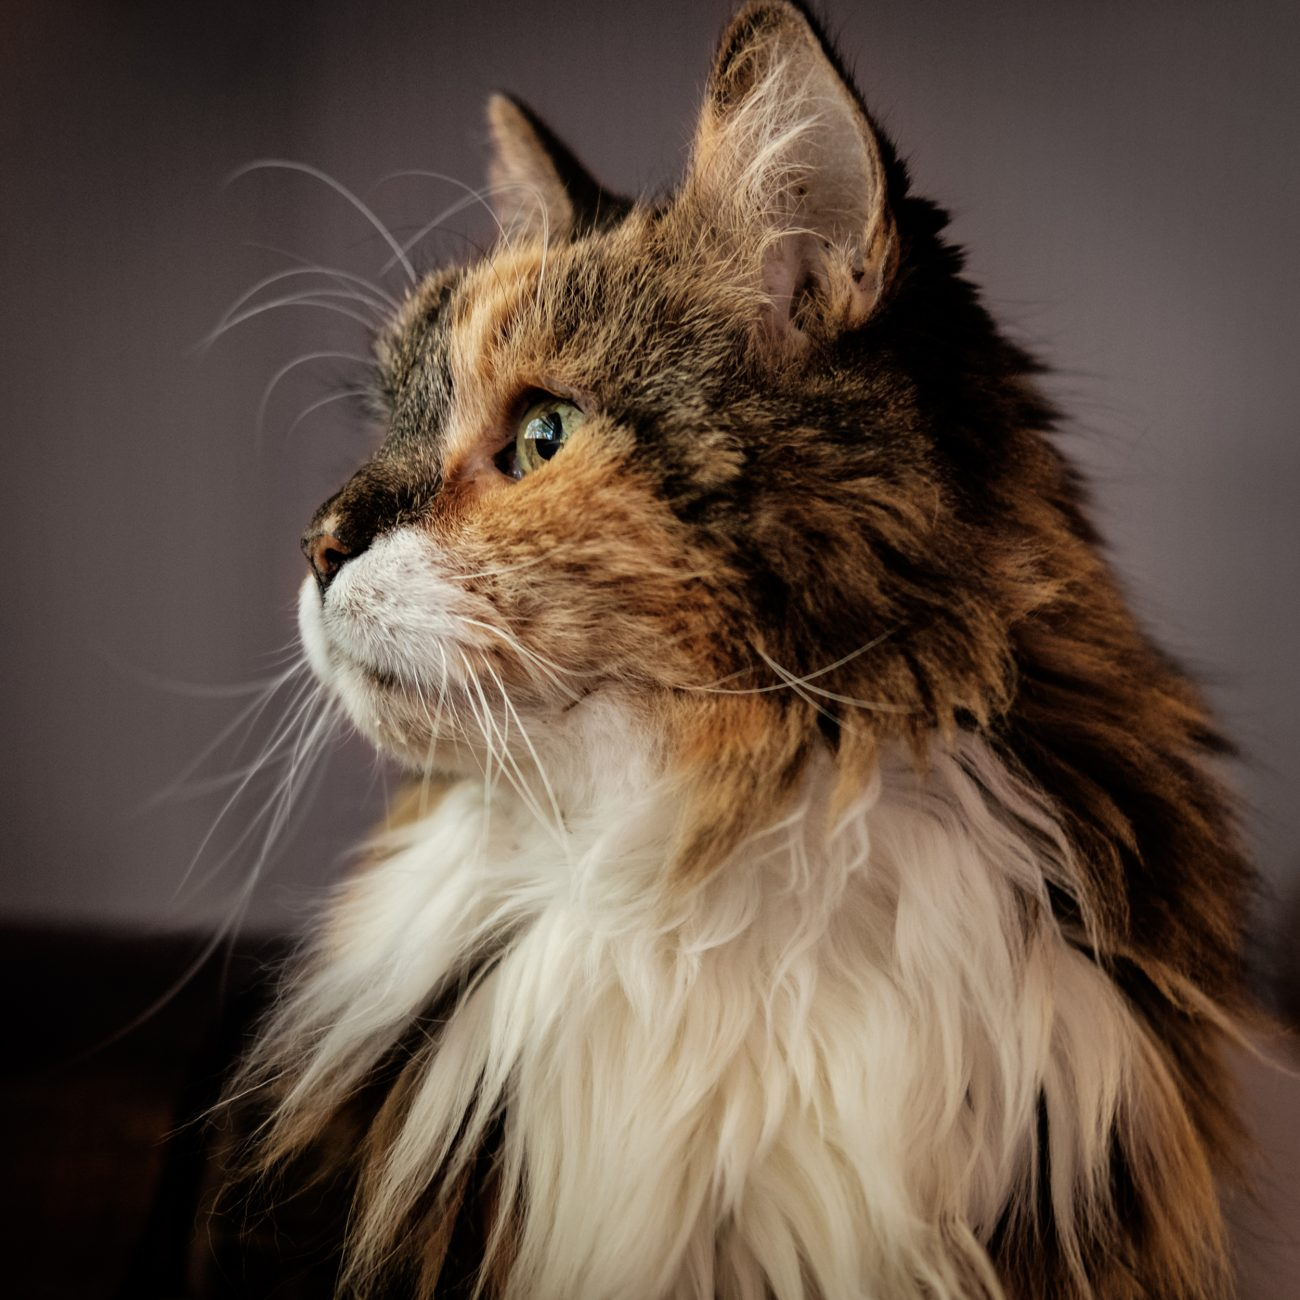 Photograph of a Maine Coon cat looking intently out of an unseen window